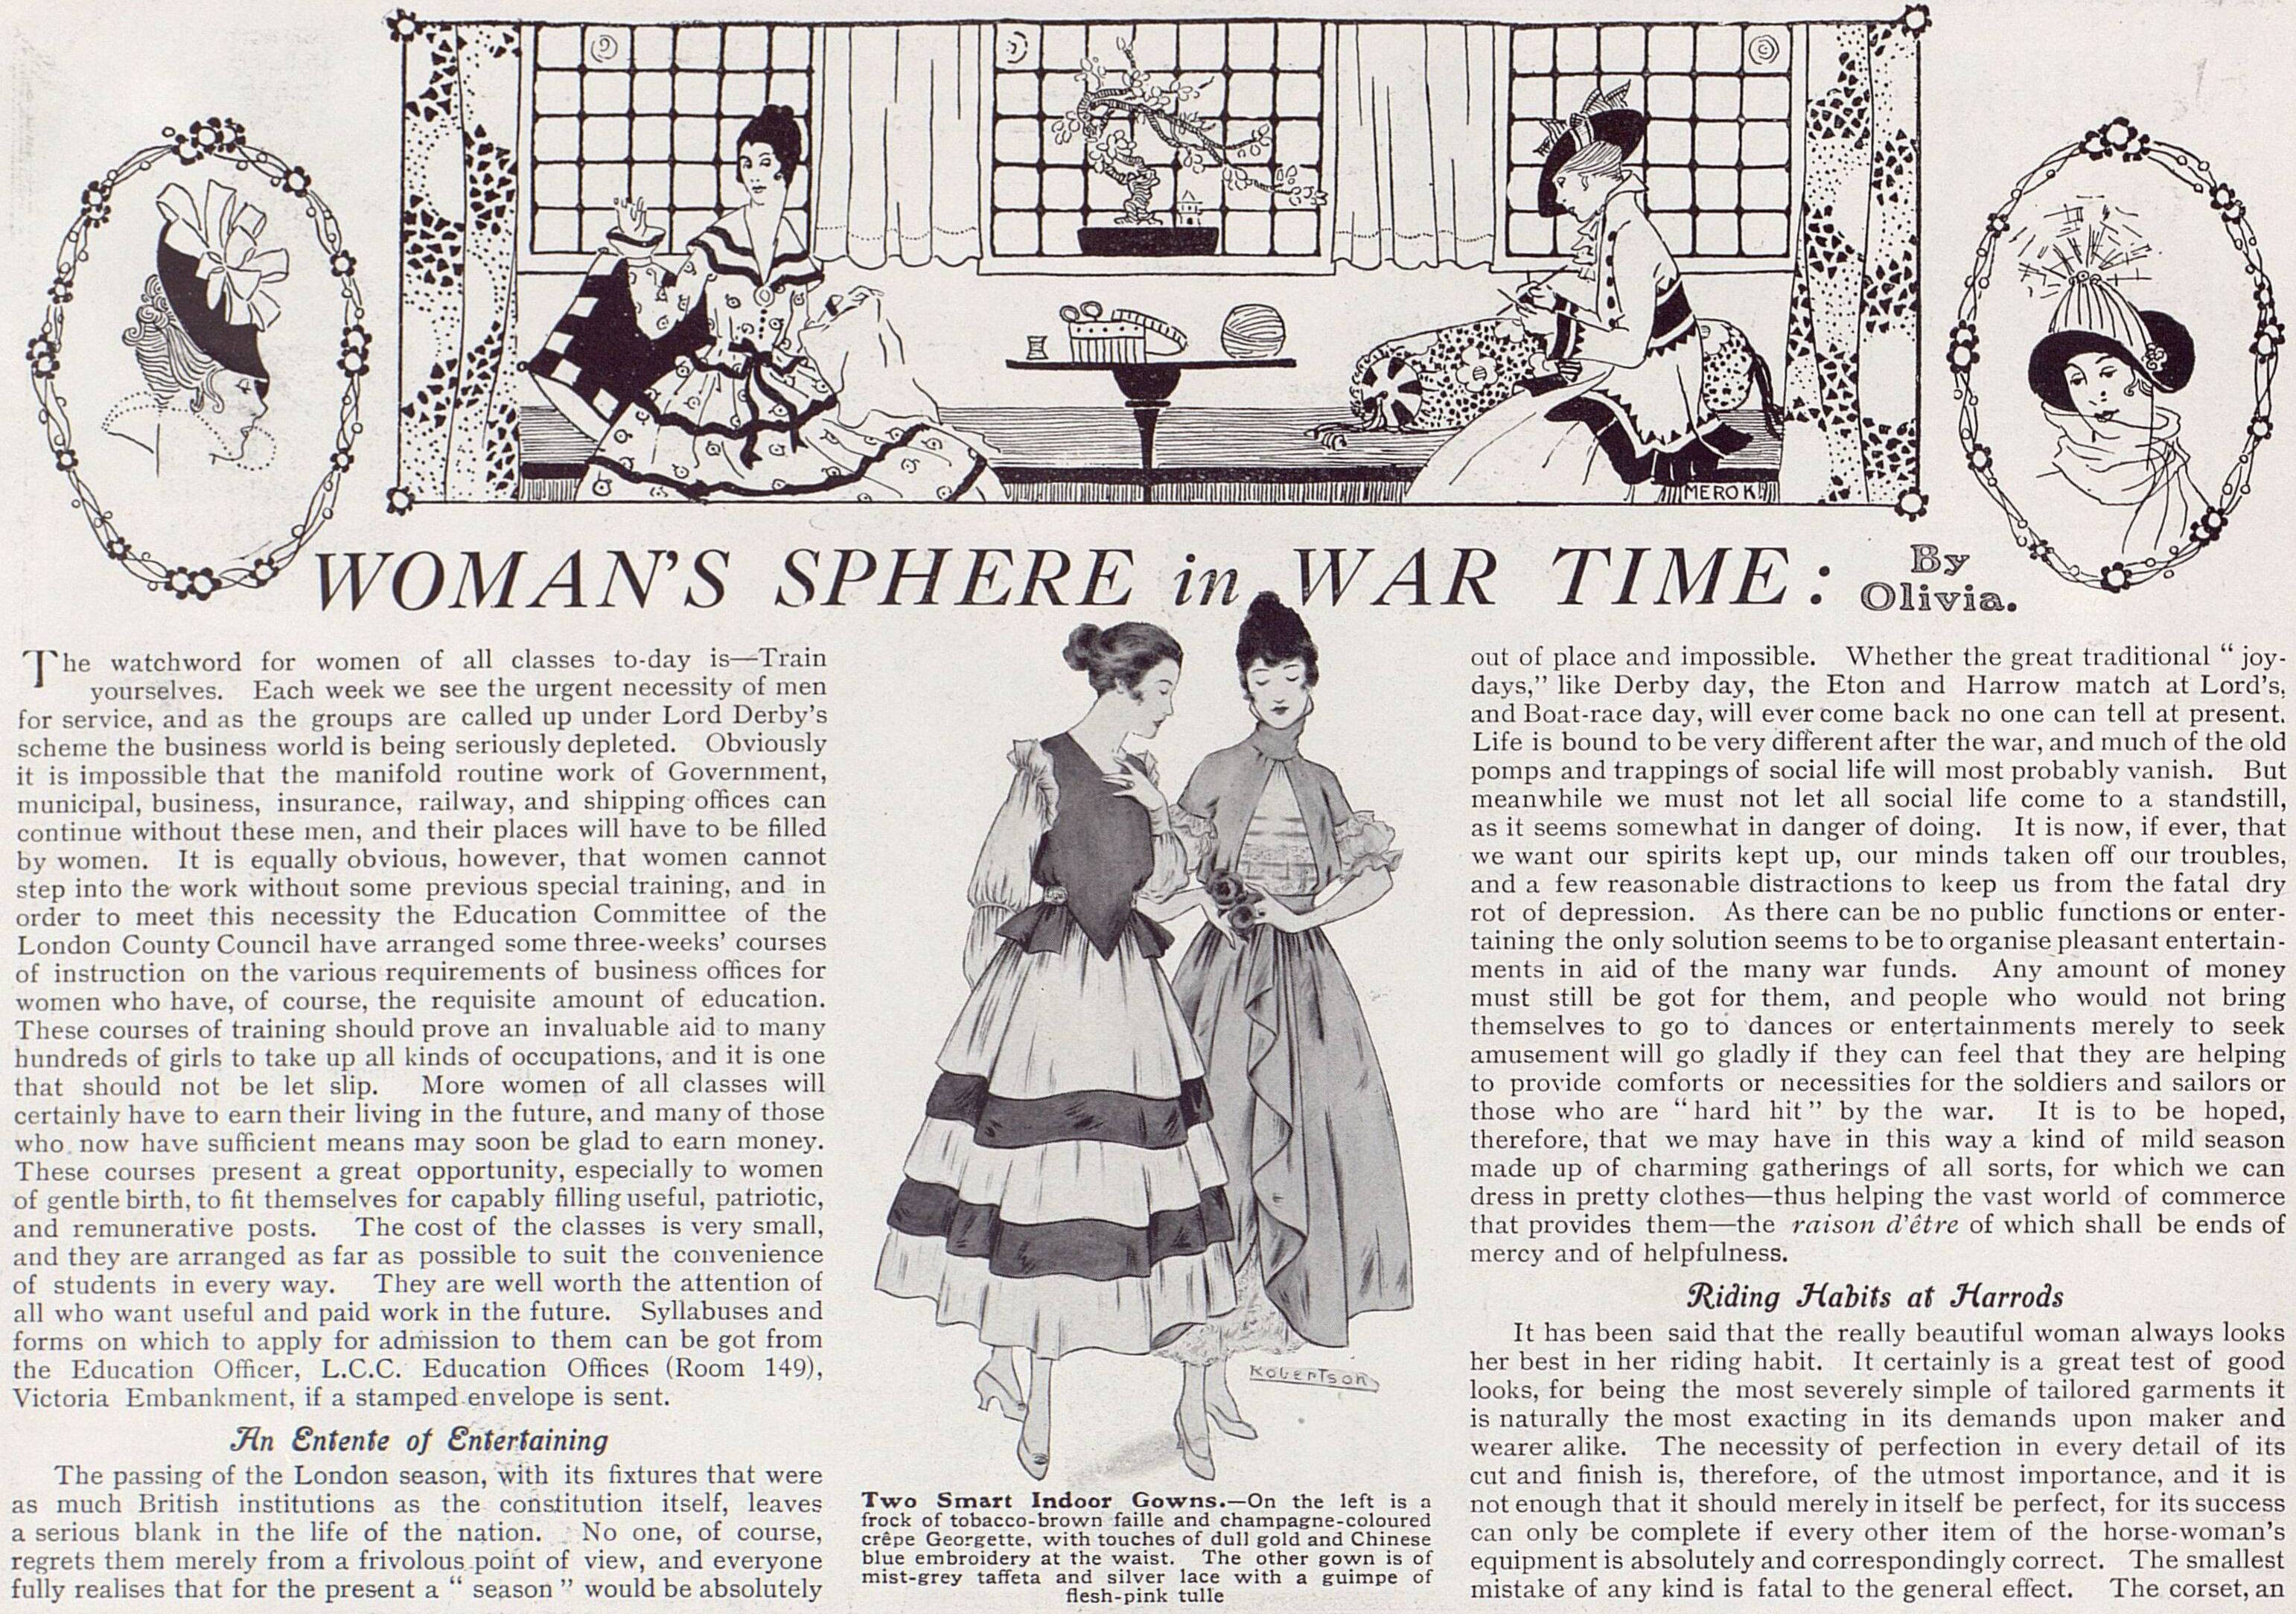 WomansSphereInWarTime_18Mar1916